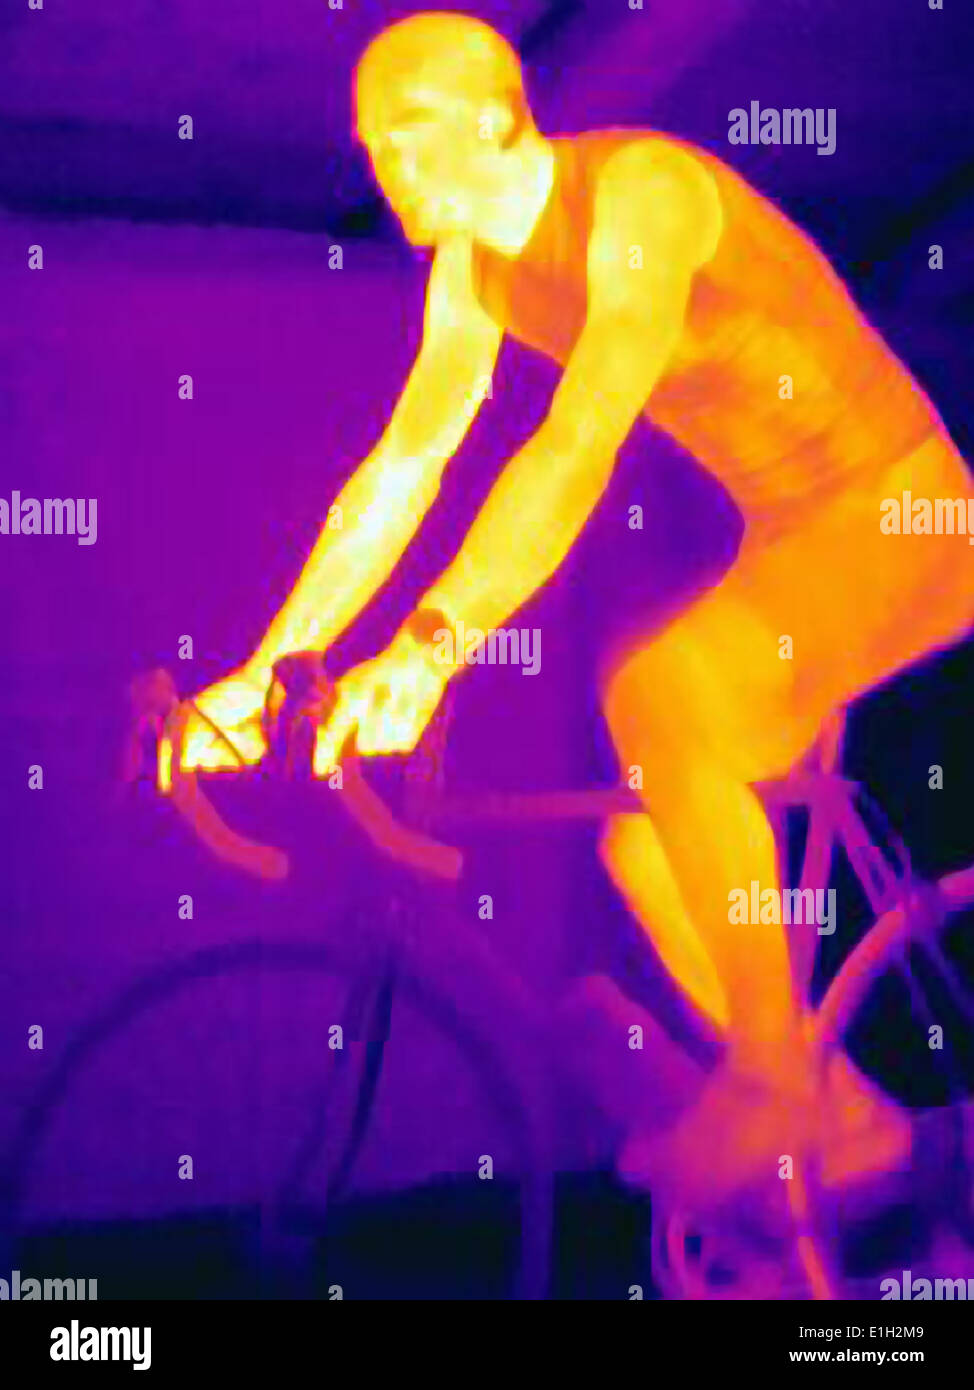 Thermal image of young male cyclist in training, showing the heat of the muscles and of the bicycle tires - Stock Image